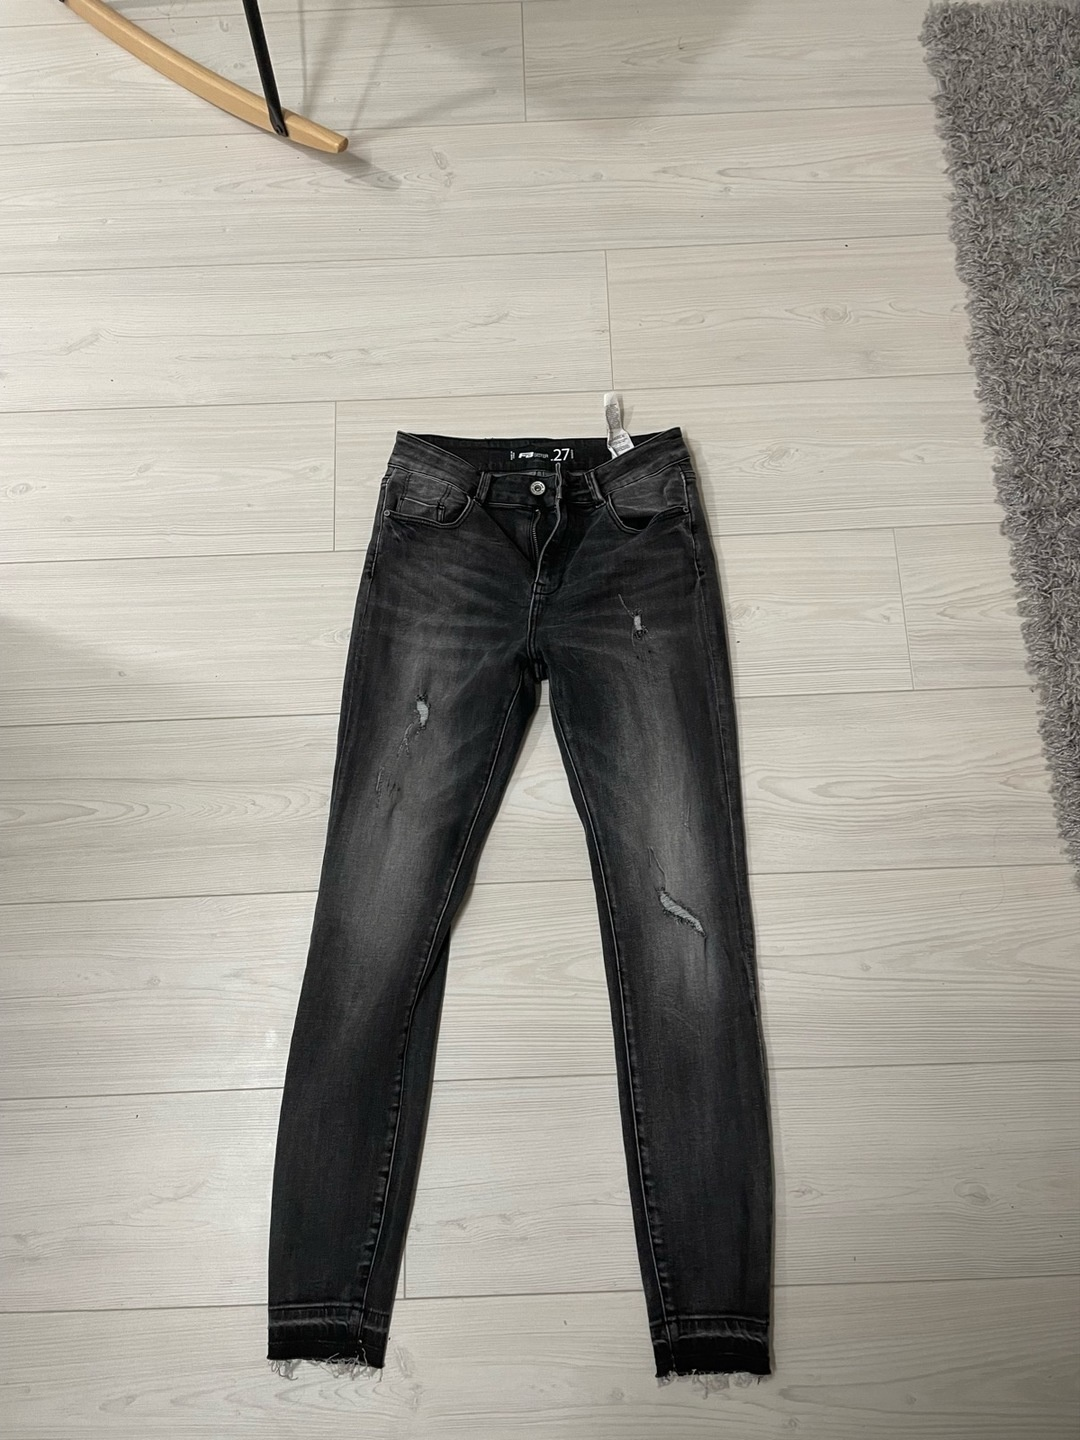 Women's trousers & jeans - FB SISTER photo 1